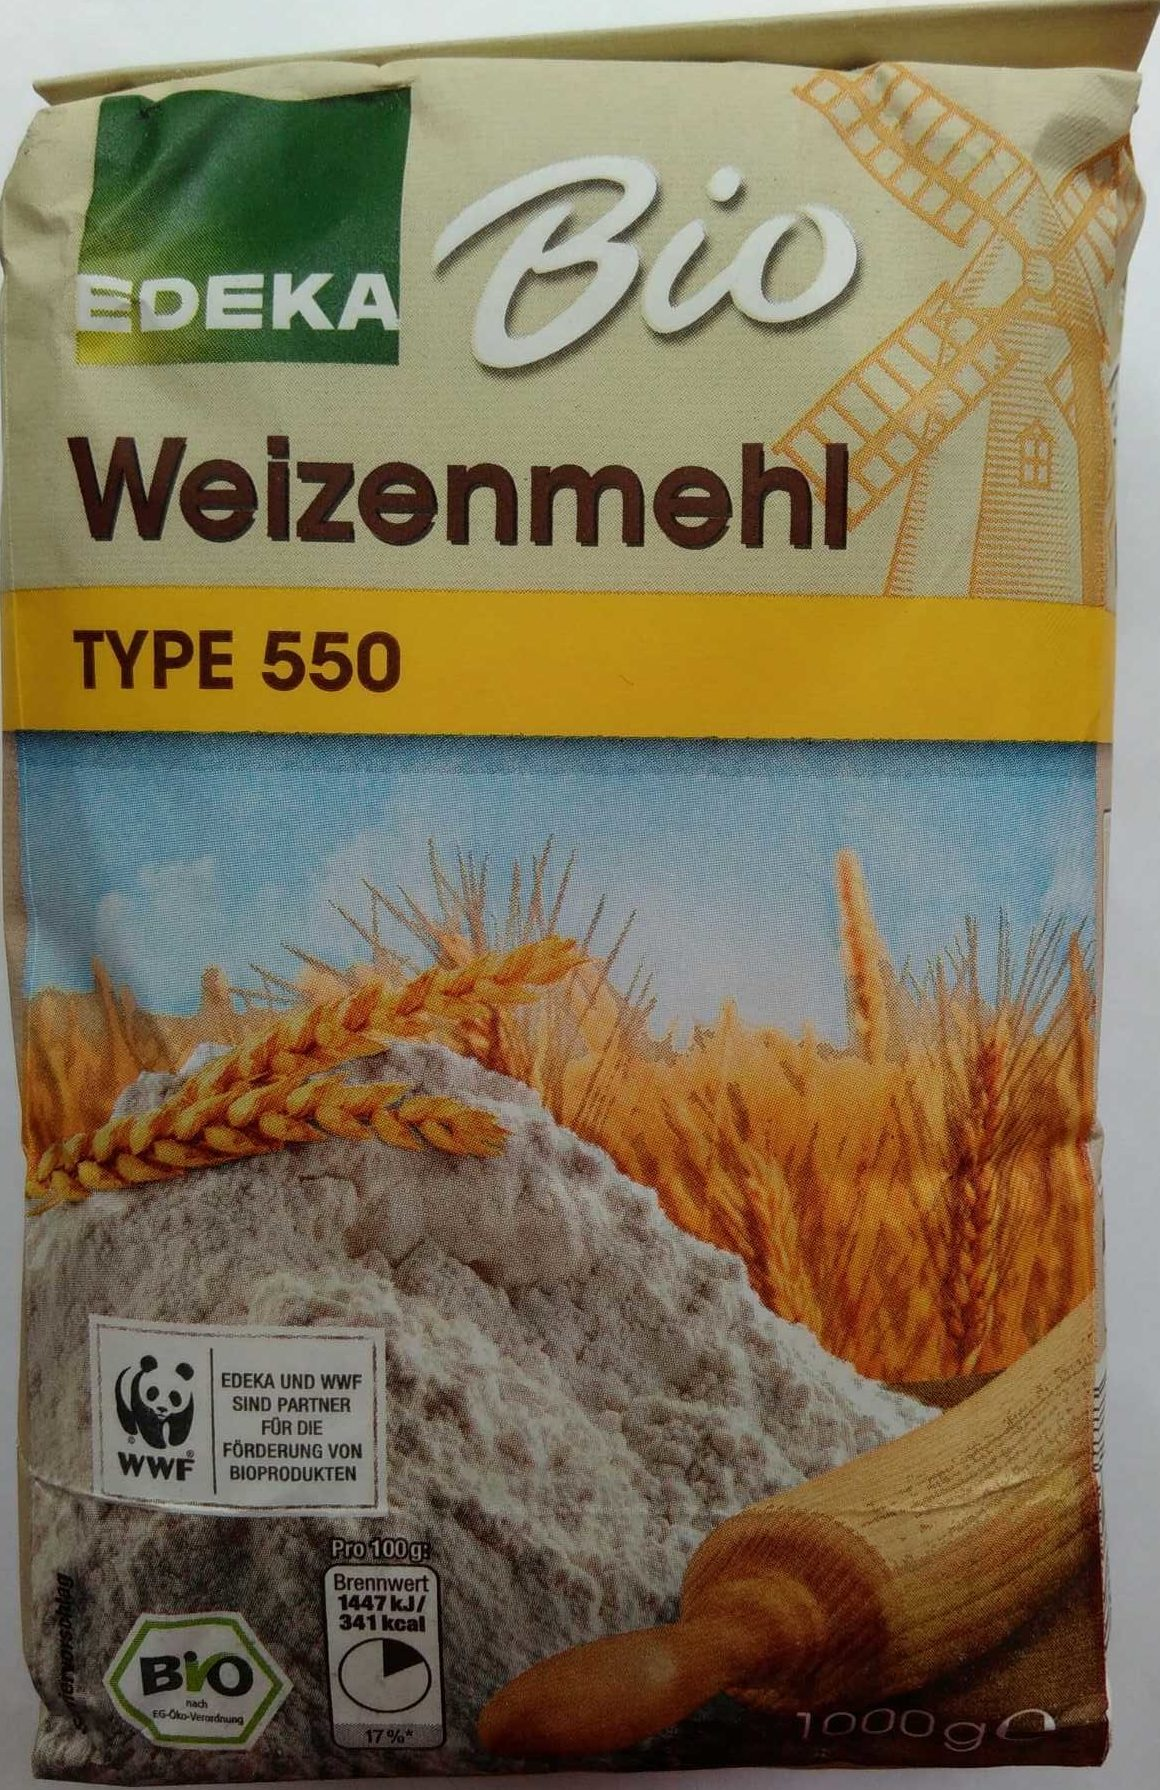 Weizenmehl Type 550 - Product